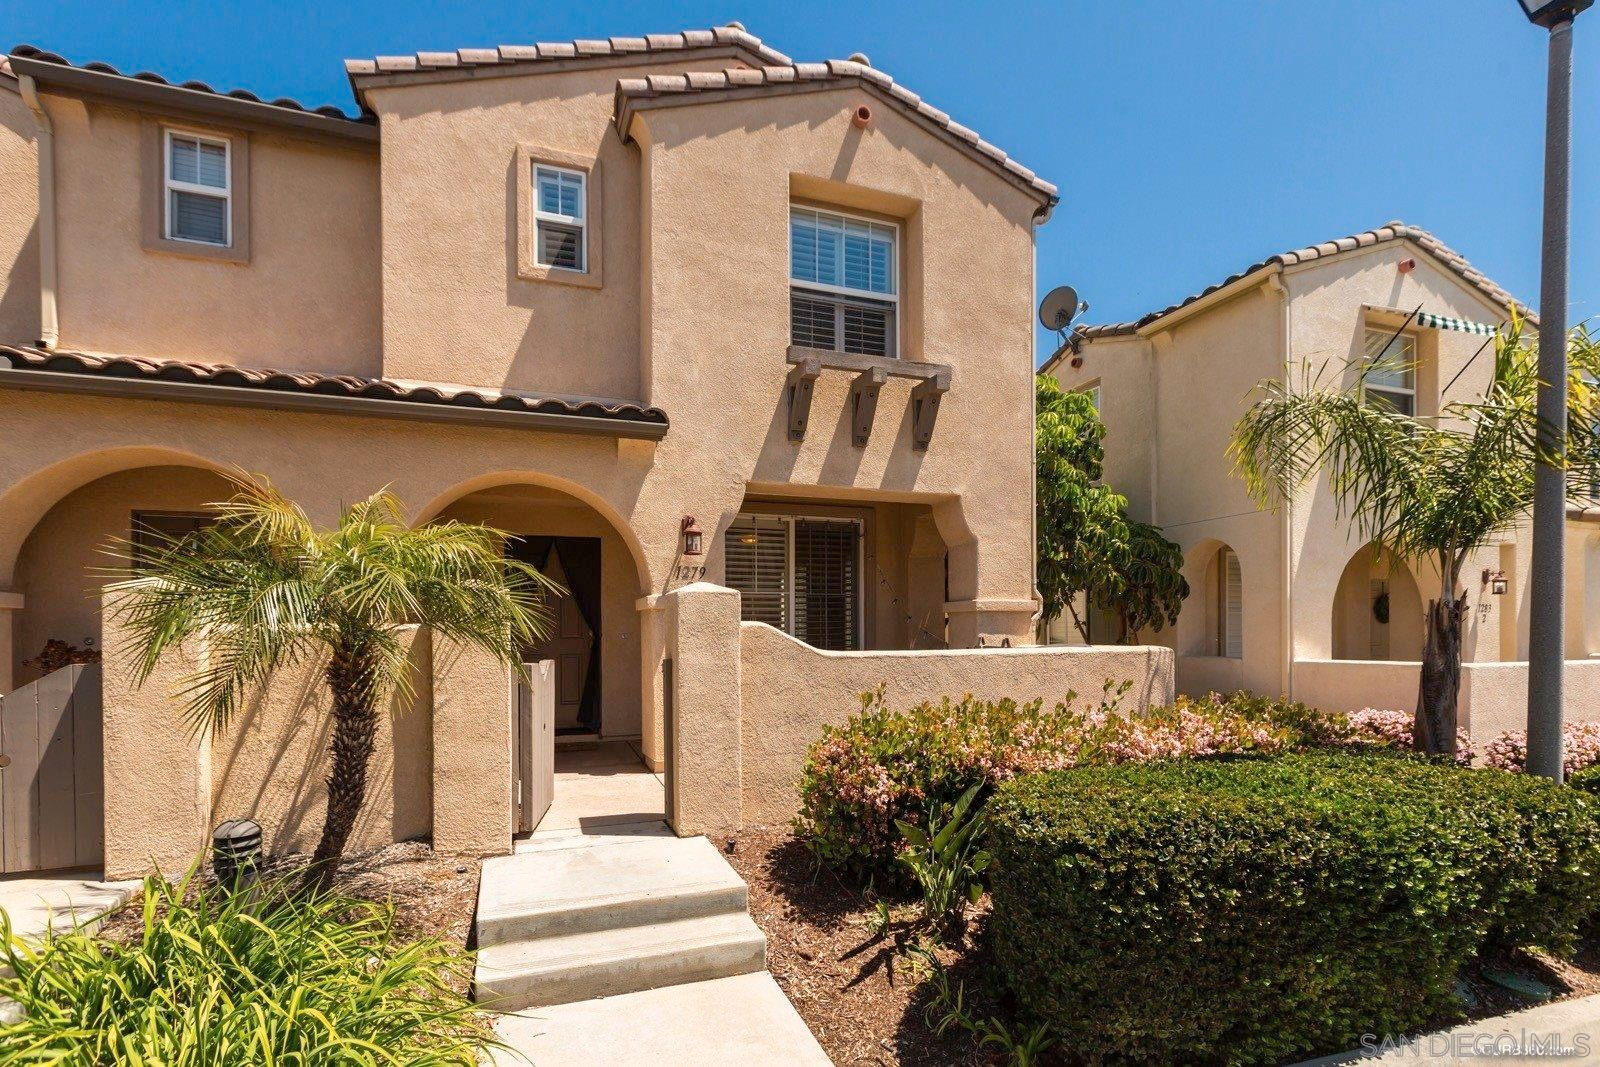 Main Photo: CHULA VISTA Townhouse for sale : 3 bedrooms : 1279 Gorge Run Way #2